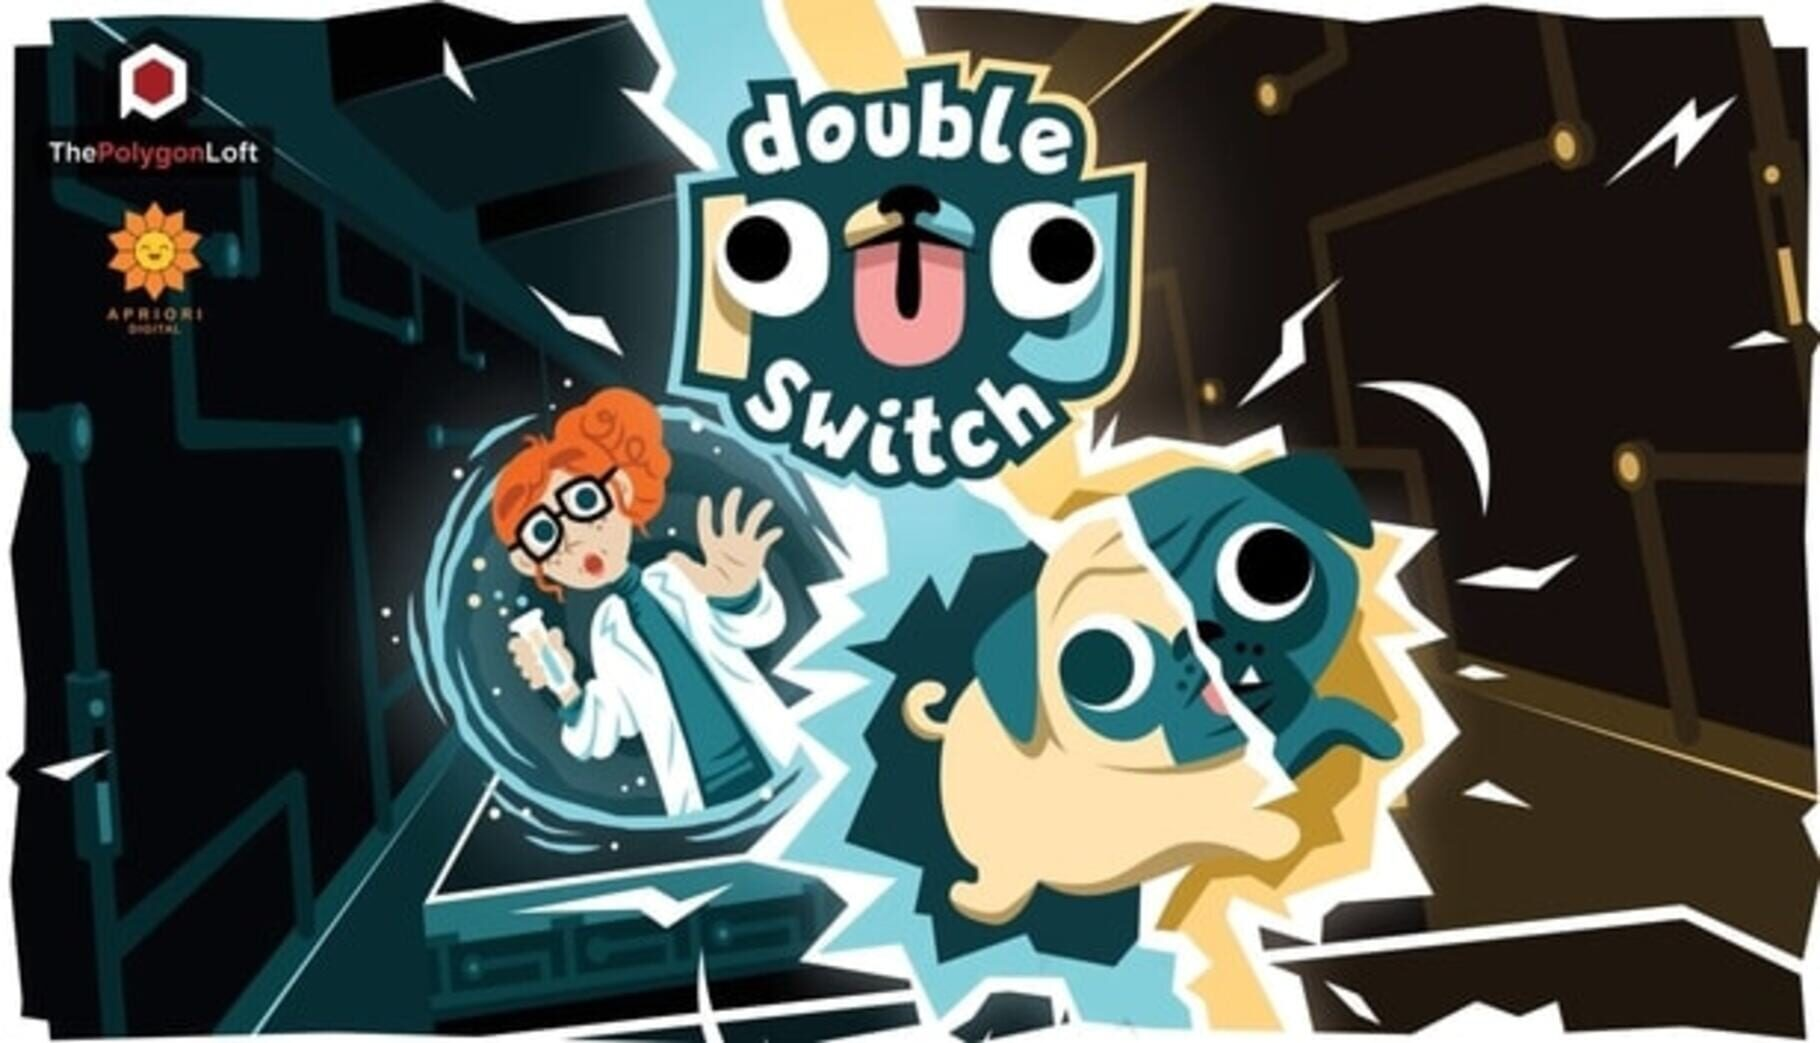 buy Double Pug Switch cd key for all platform